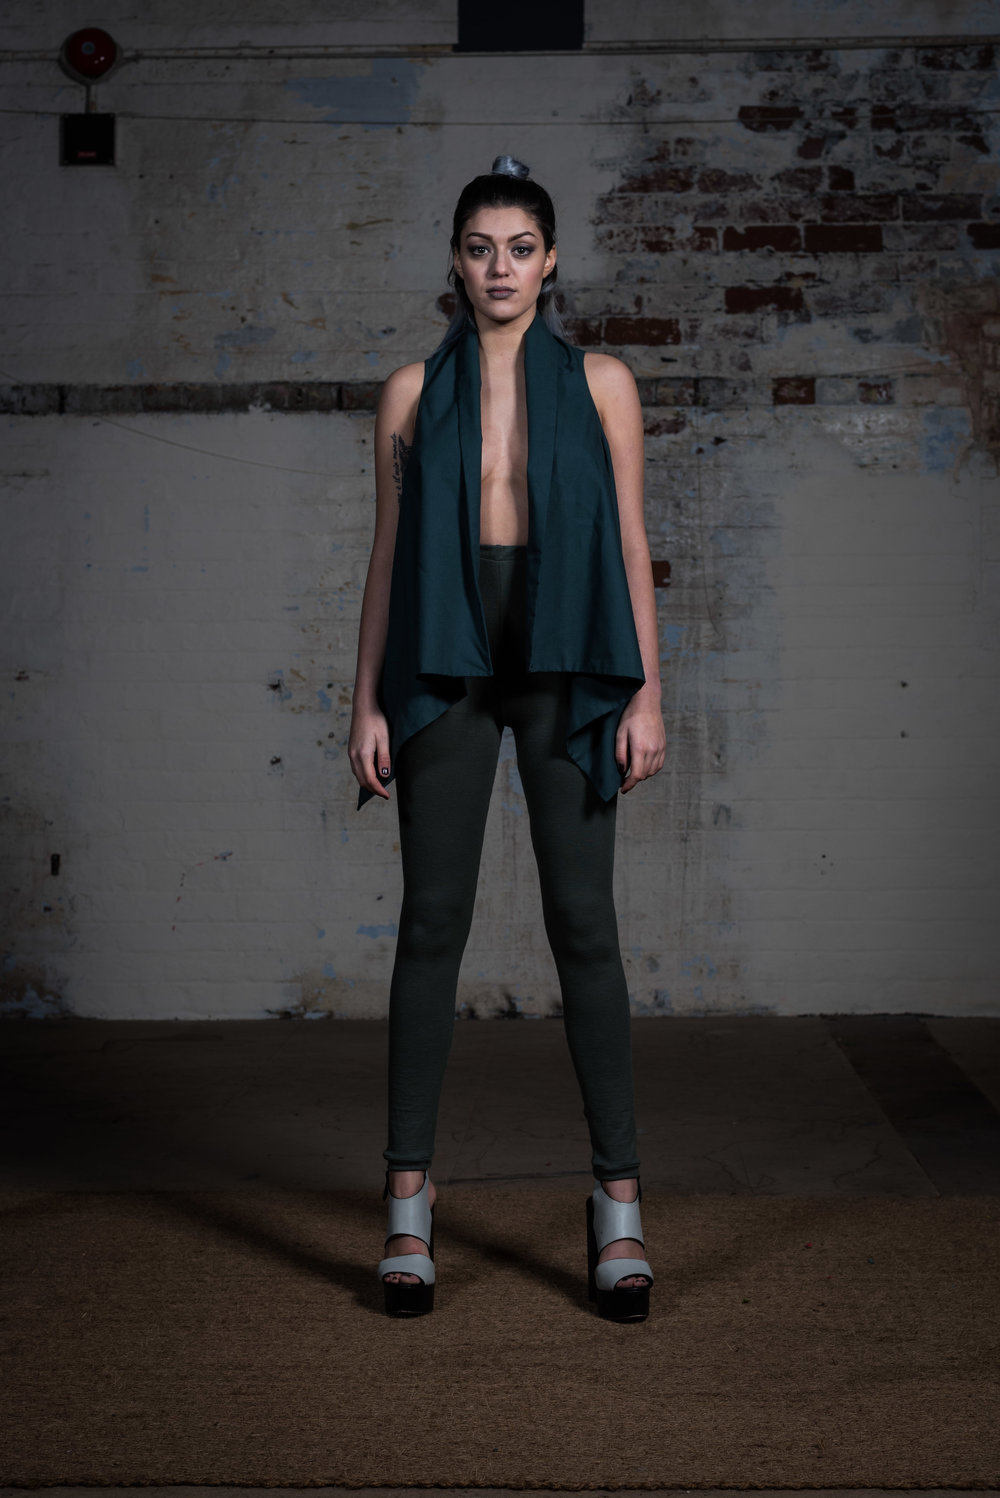 zaramia-ava-zaramiaava-leeds-fashion-designer-ethical-sustainable-teal-wrap-top-versatile-drape-grey-rei-cowl-leggings-styling-location-womenswear-models-photoshoot-22